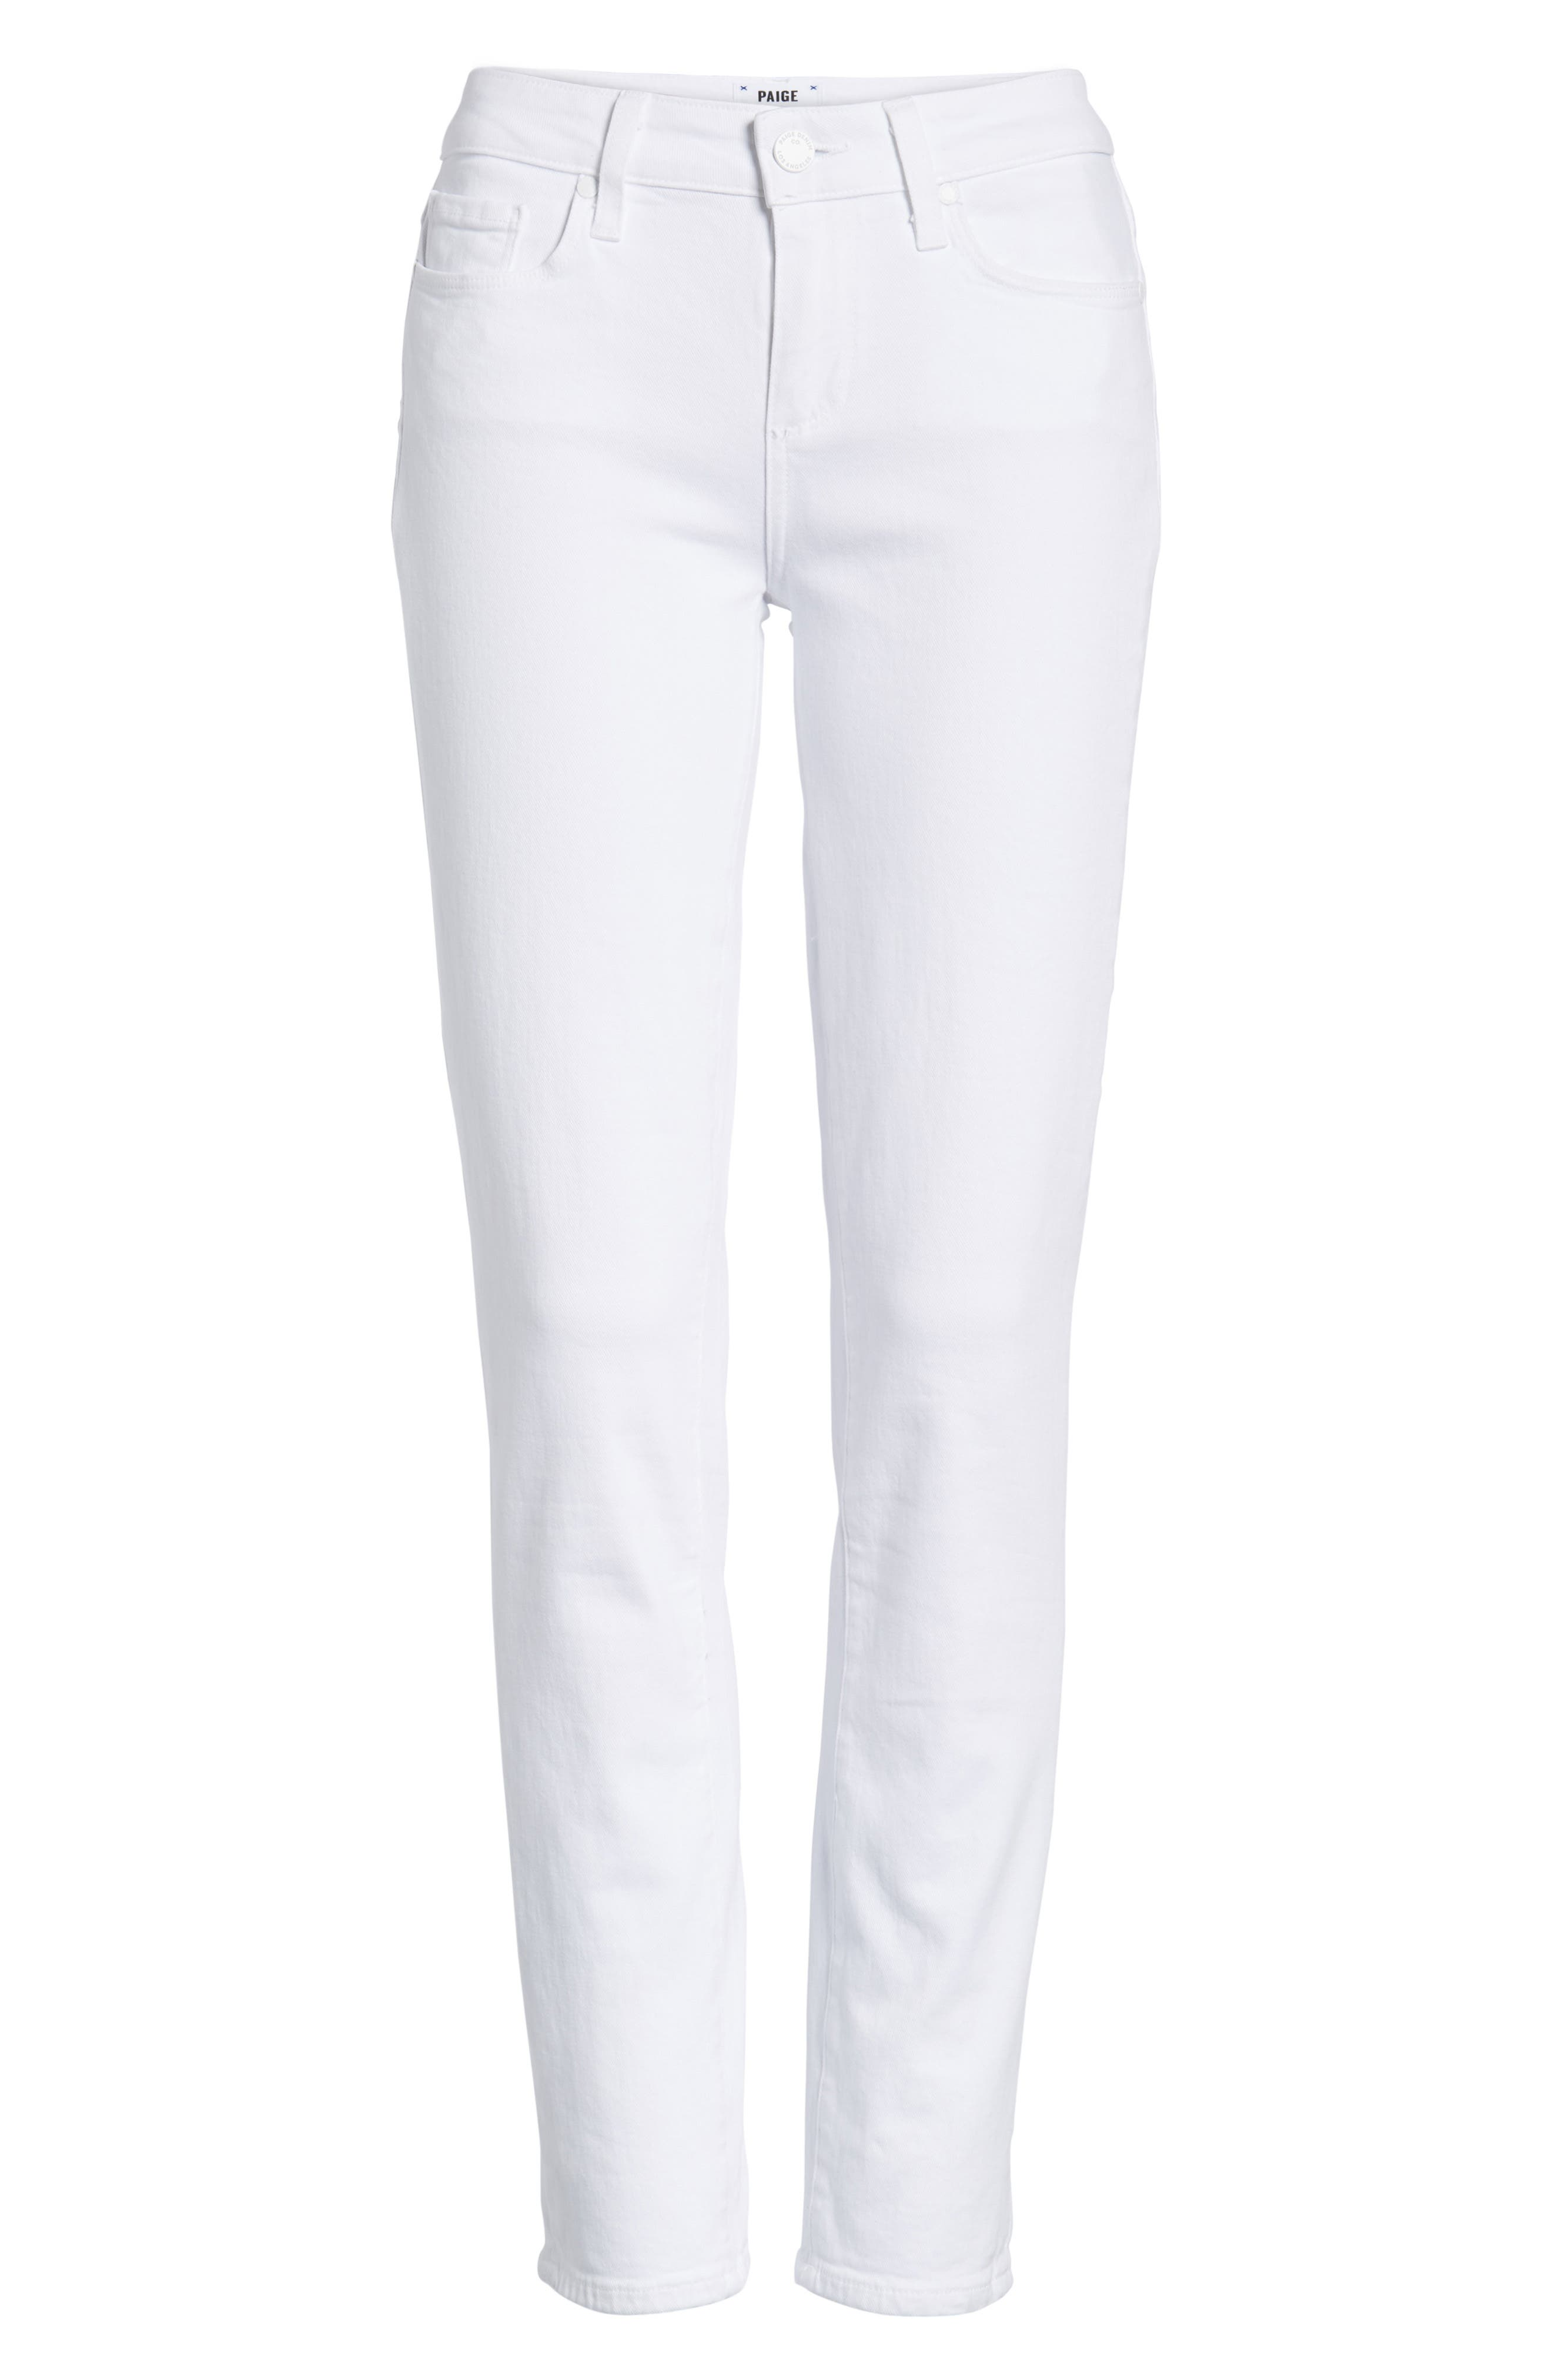 Skyline Ankle Peg Skinny Jeans,                             Alternate thumbnail 7, color,                             CRISP WHITE